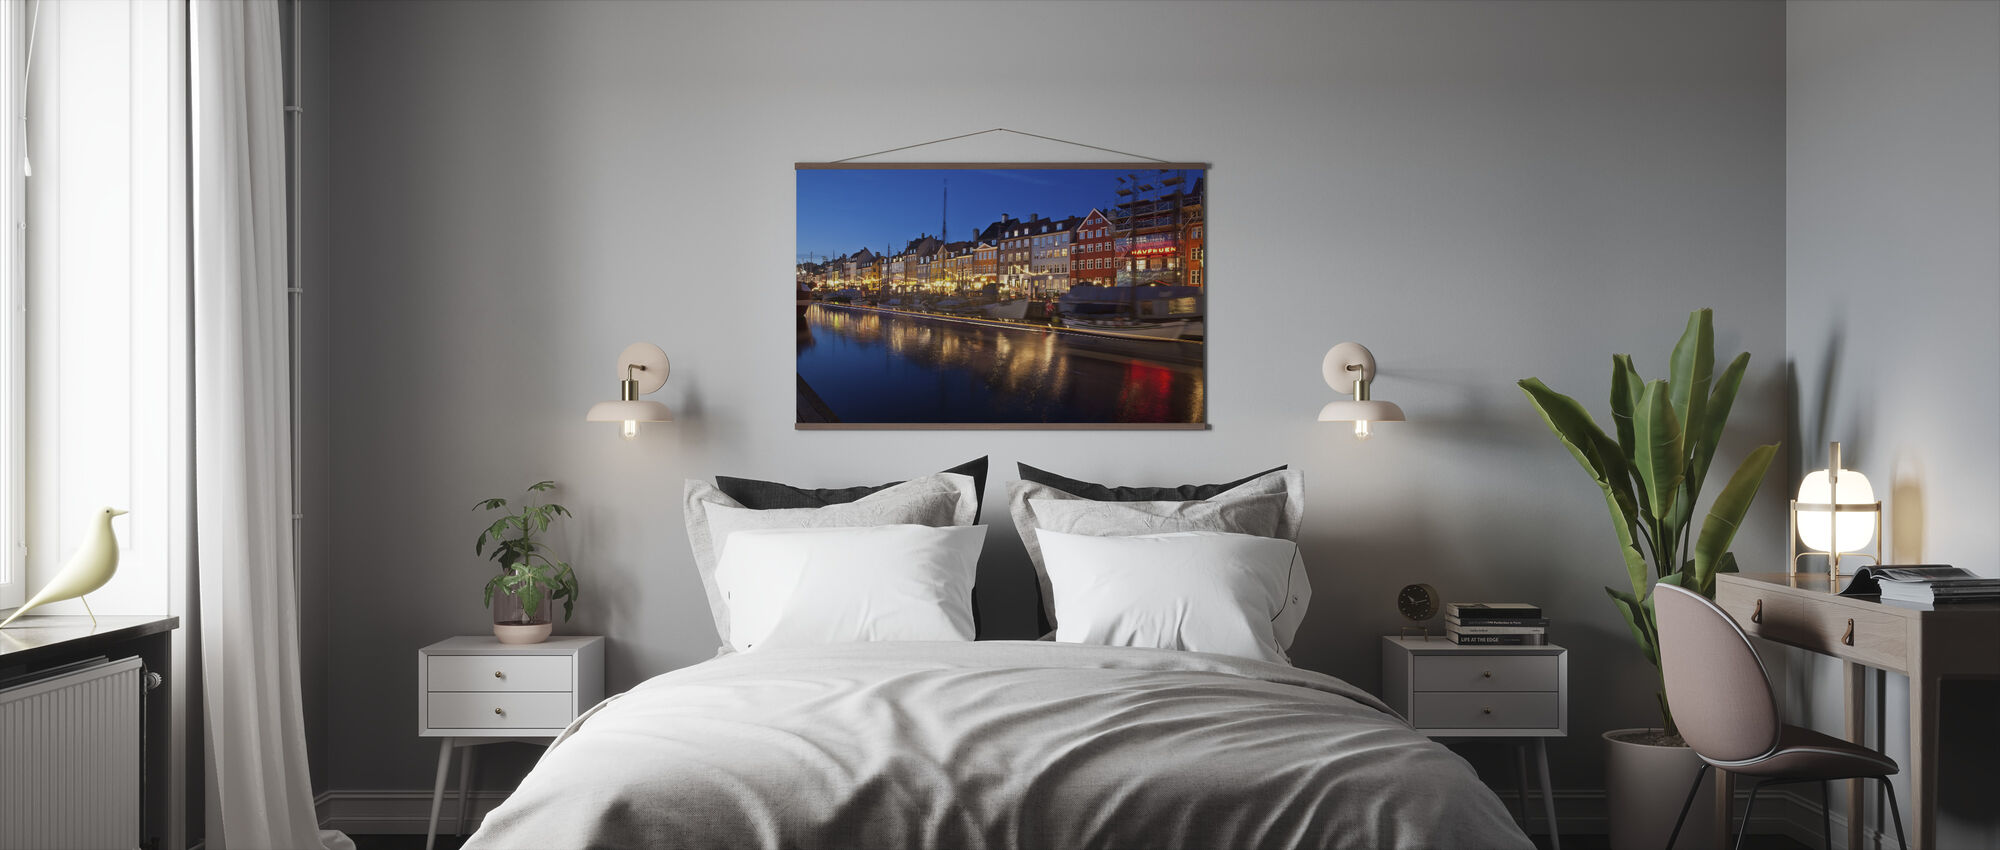 Night in Nyhavn, Copenhagen, Denmark - Poster - Bedroom